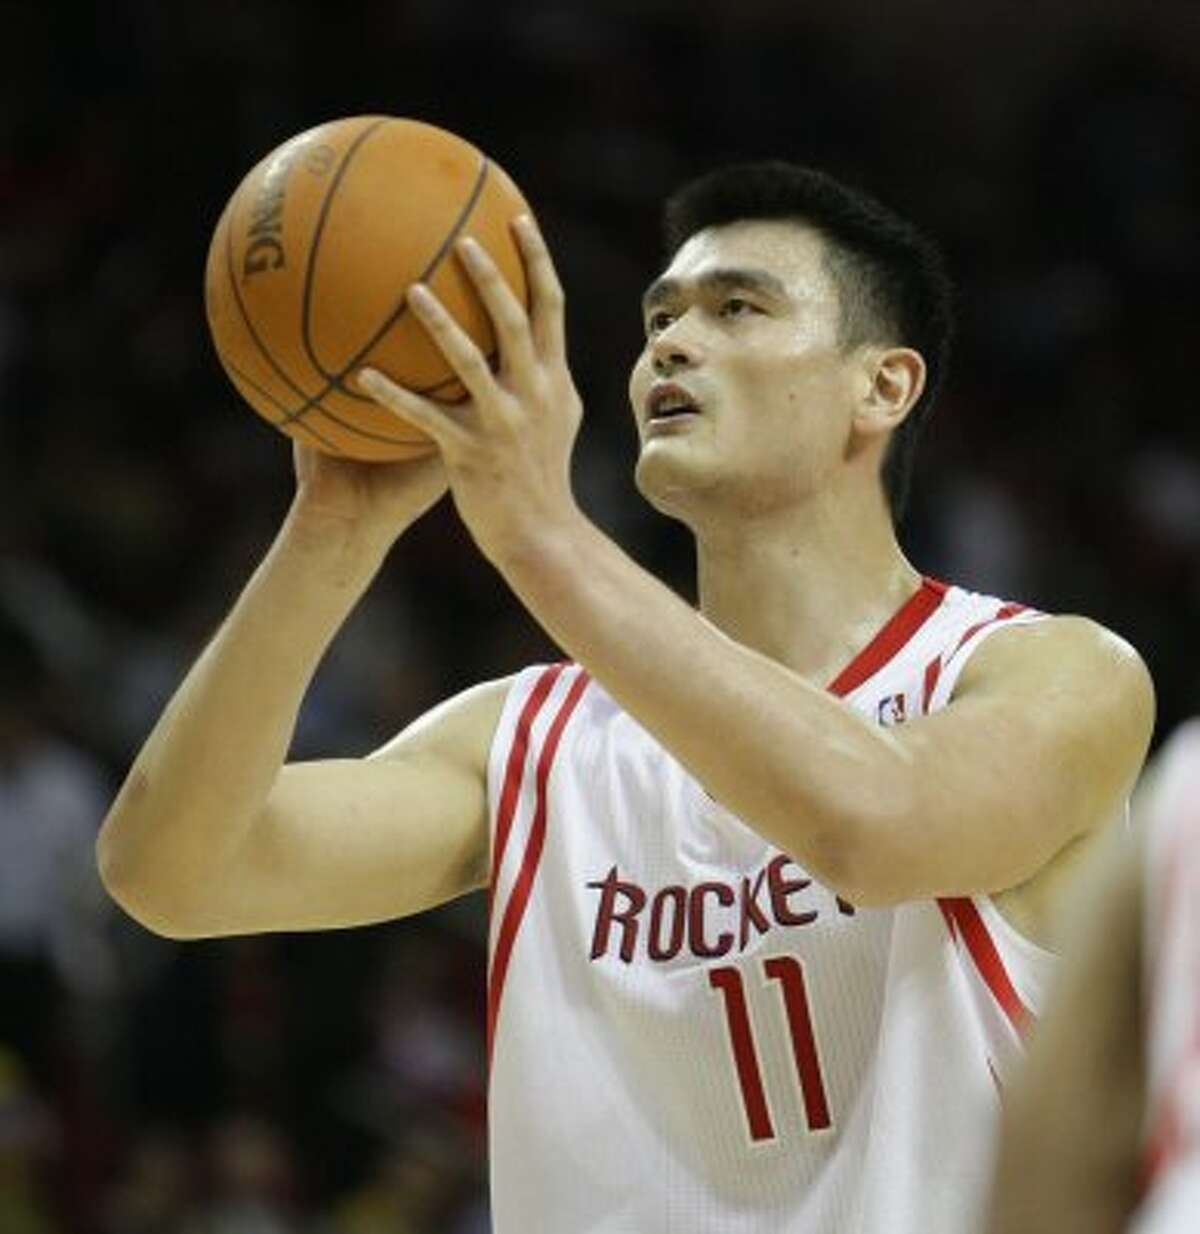 As a Rocket, Yao Ming averaged 19 points and 9.2 rebounds, was selected to eight All-Star teams. Click through the gallery to see other Hall of Famers with Houston ties.